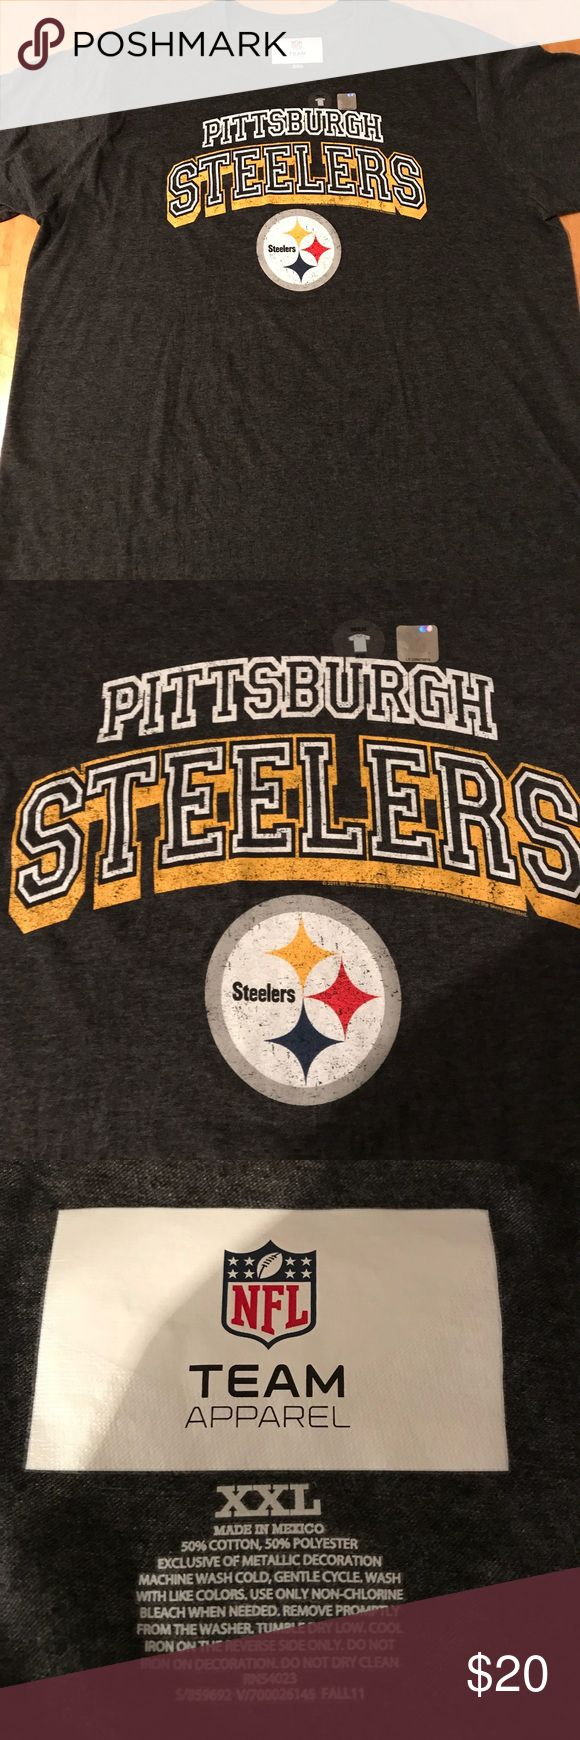 Men's Pittsburgh Steelers T-shirt Men's S/S NFL t-shirt. Pittsburgh Steelers name and logo on gray background. Size 2XL. 50% Cotton/50% Polyester. Never worn. New with tags.   ⭐️ Non Smoking Home ⭐️ No Trades Shirts Tees - Short Sleeve